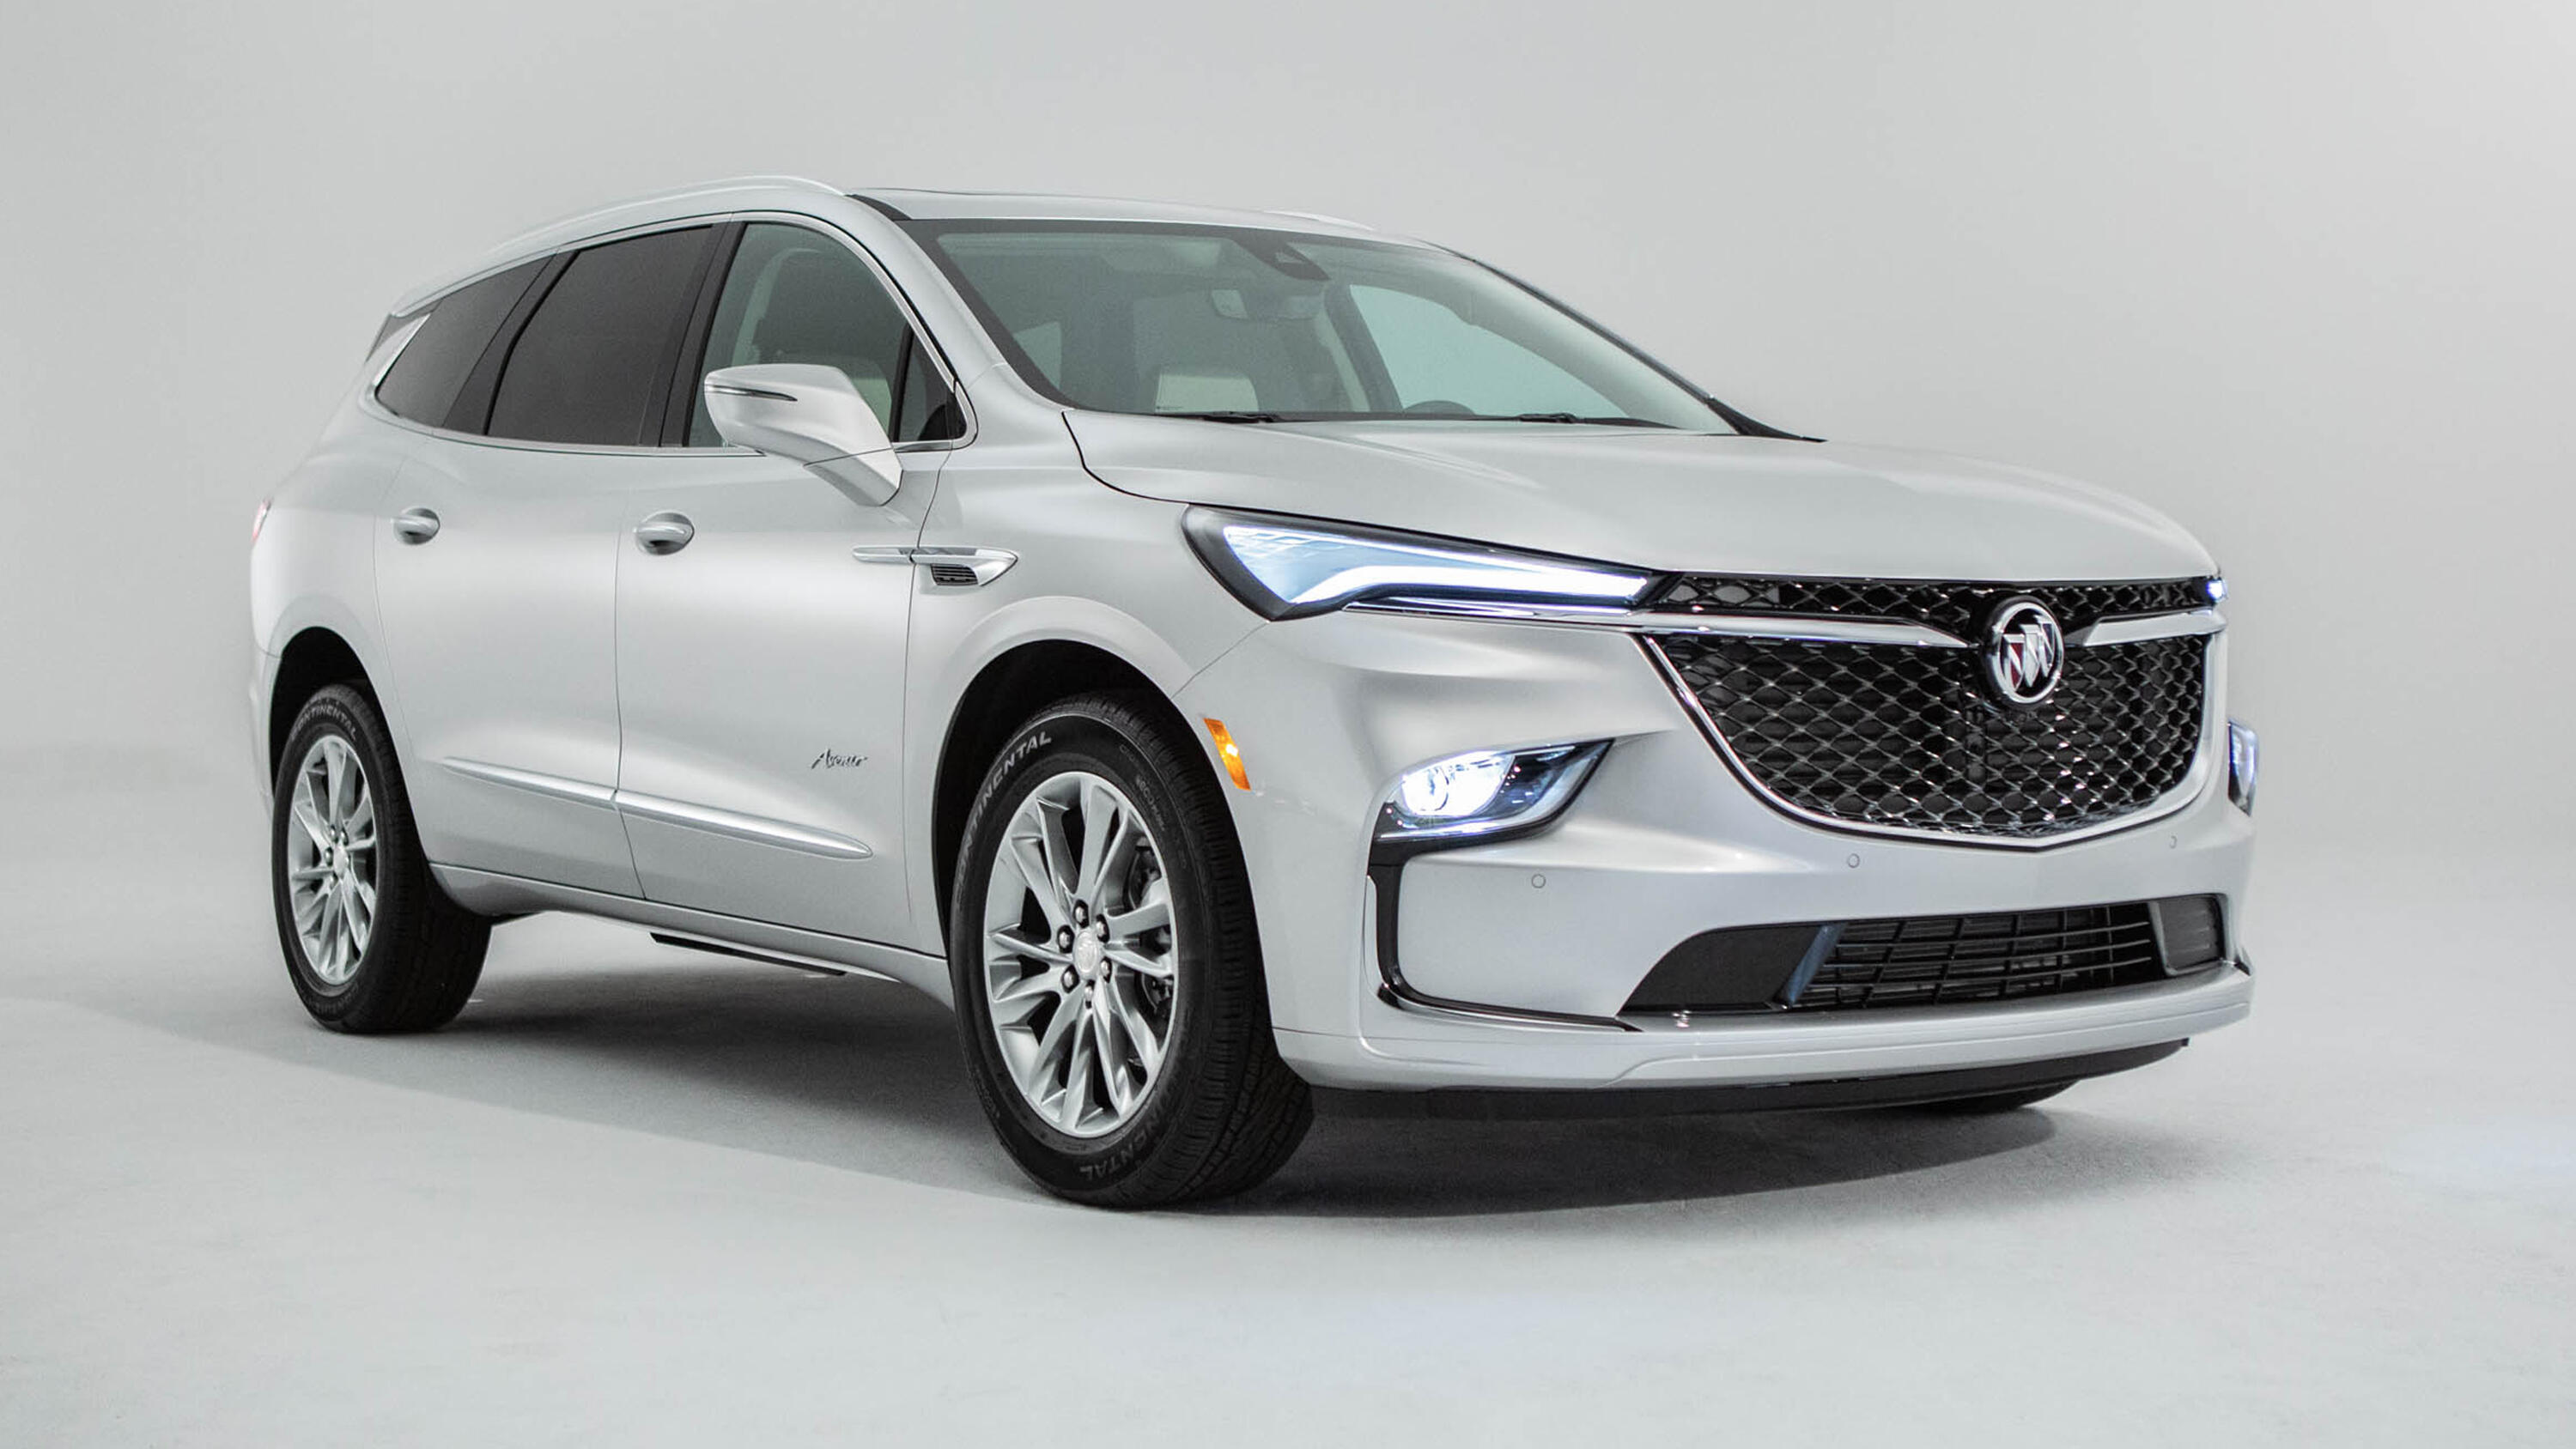 Video: The 2022 Buick Enclave is road-trip ready